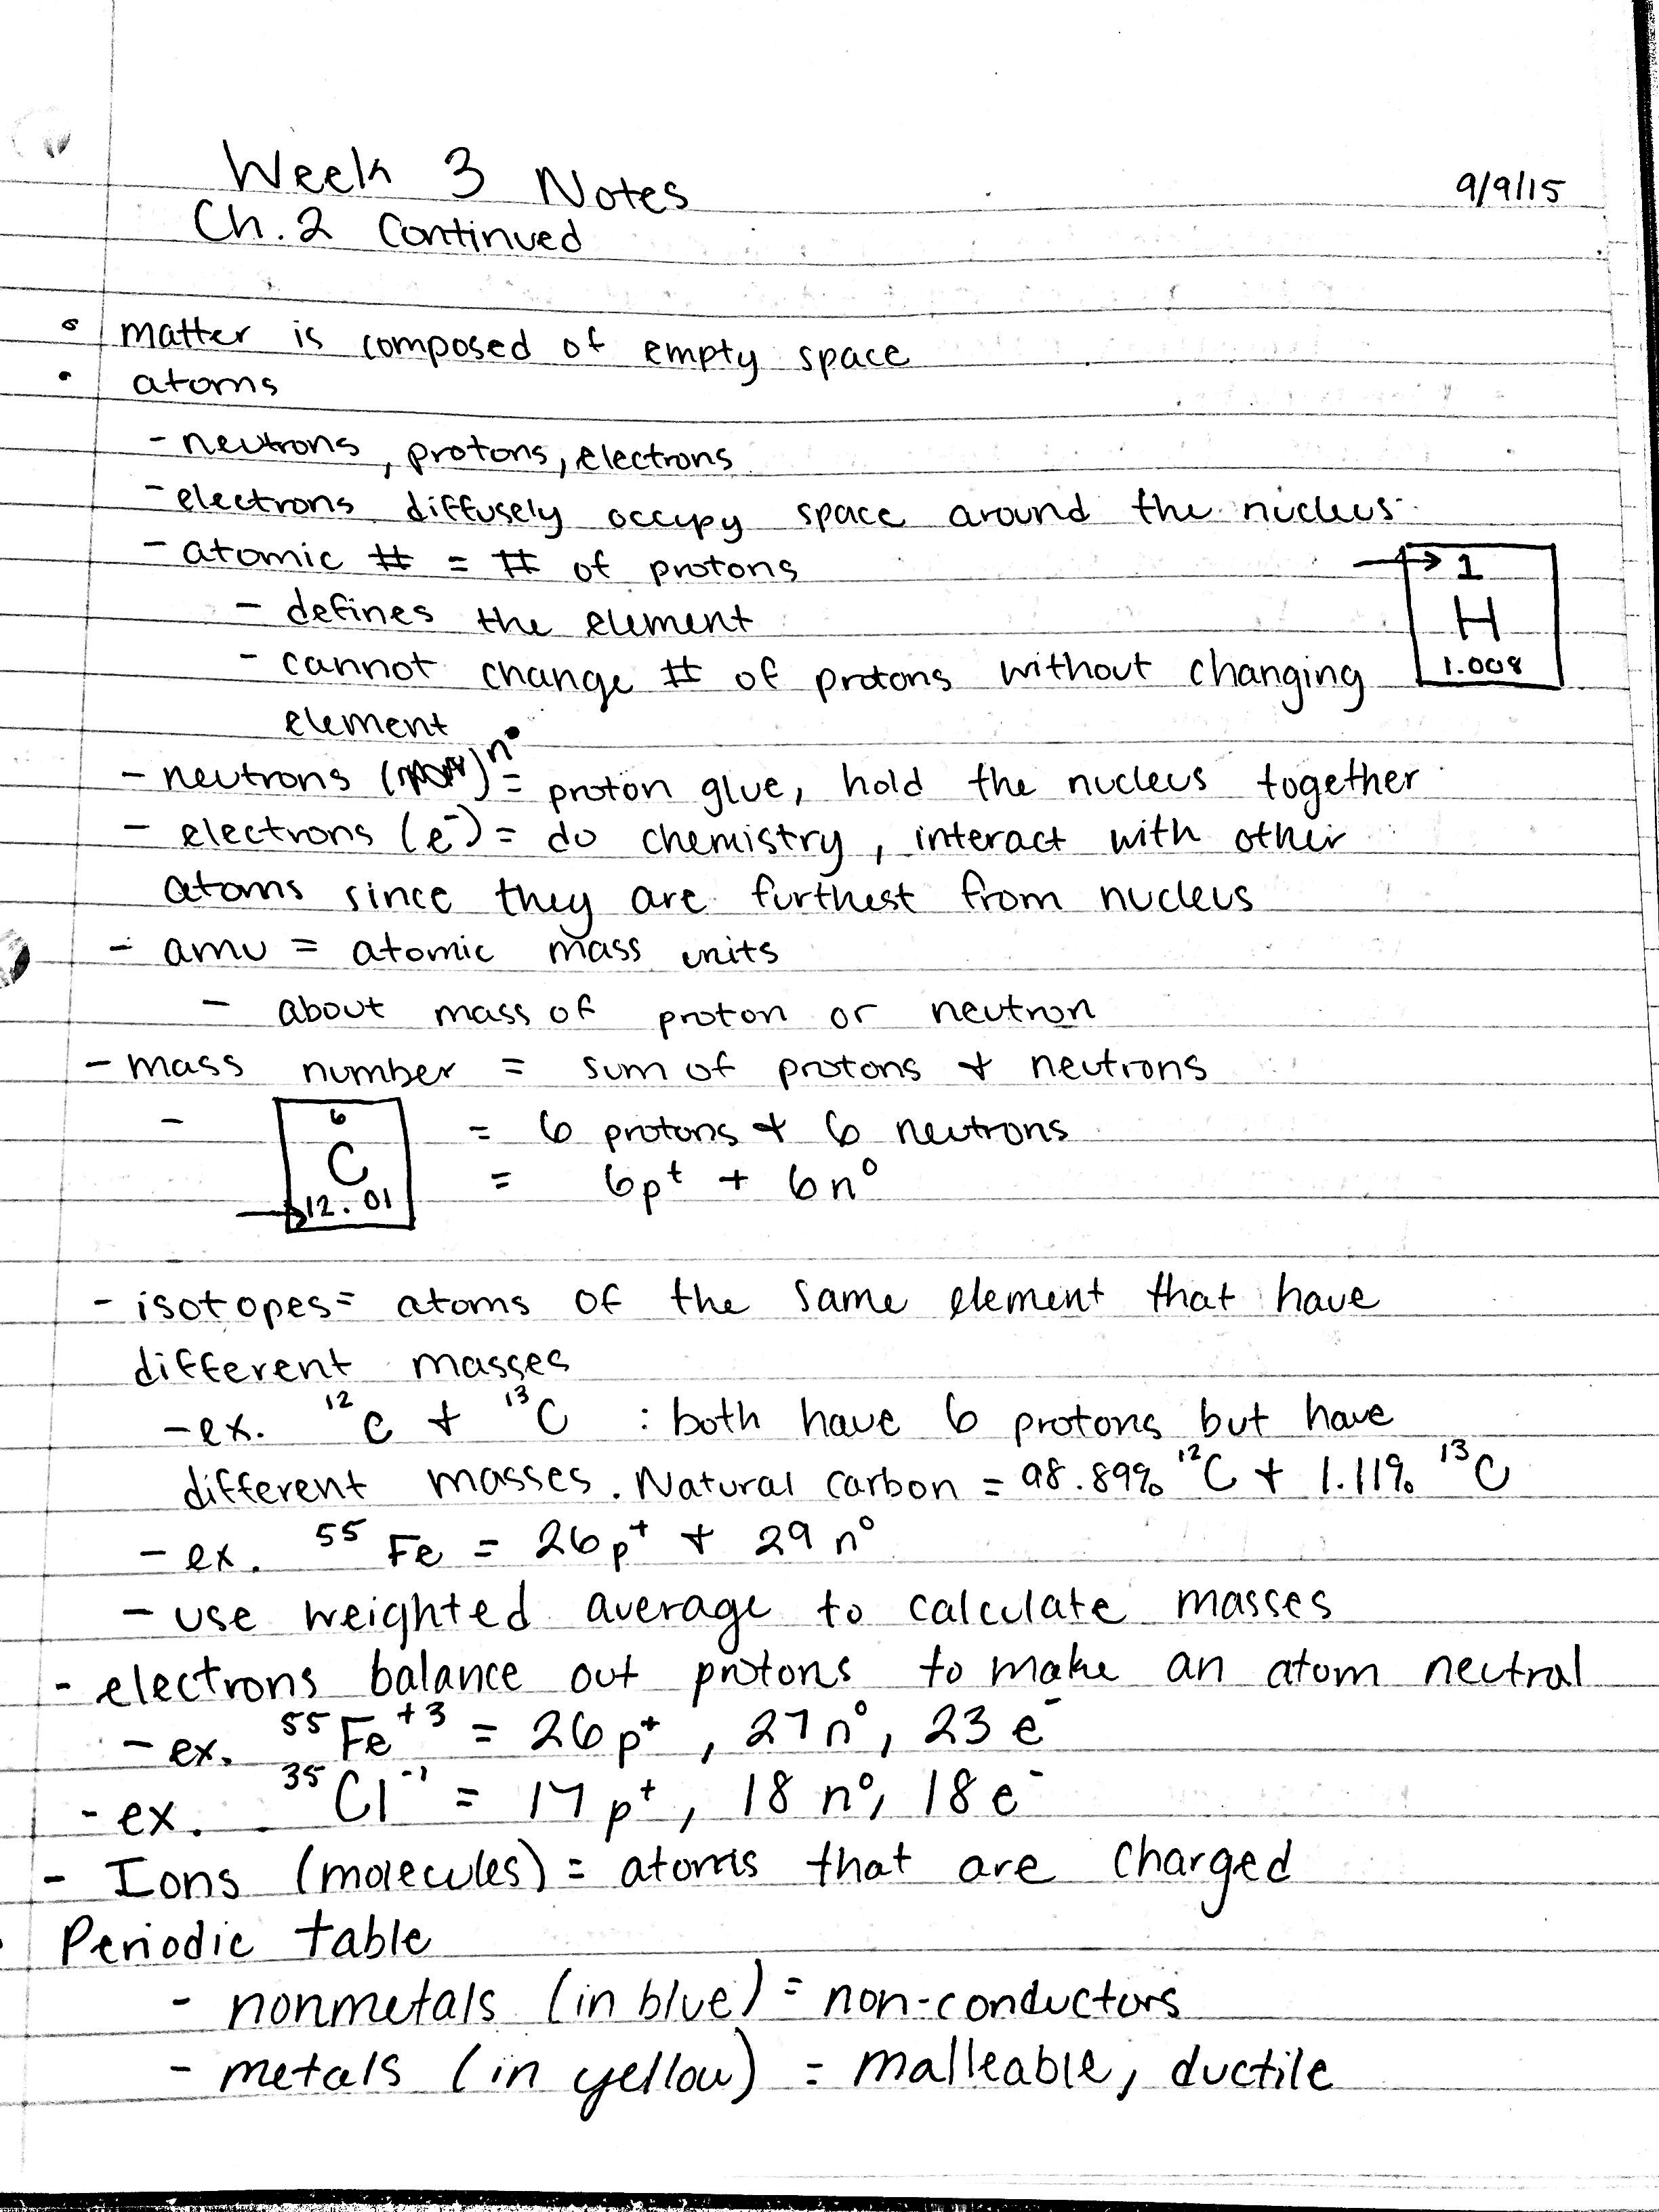 CHM 1045 - Class Notes - Week 3